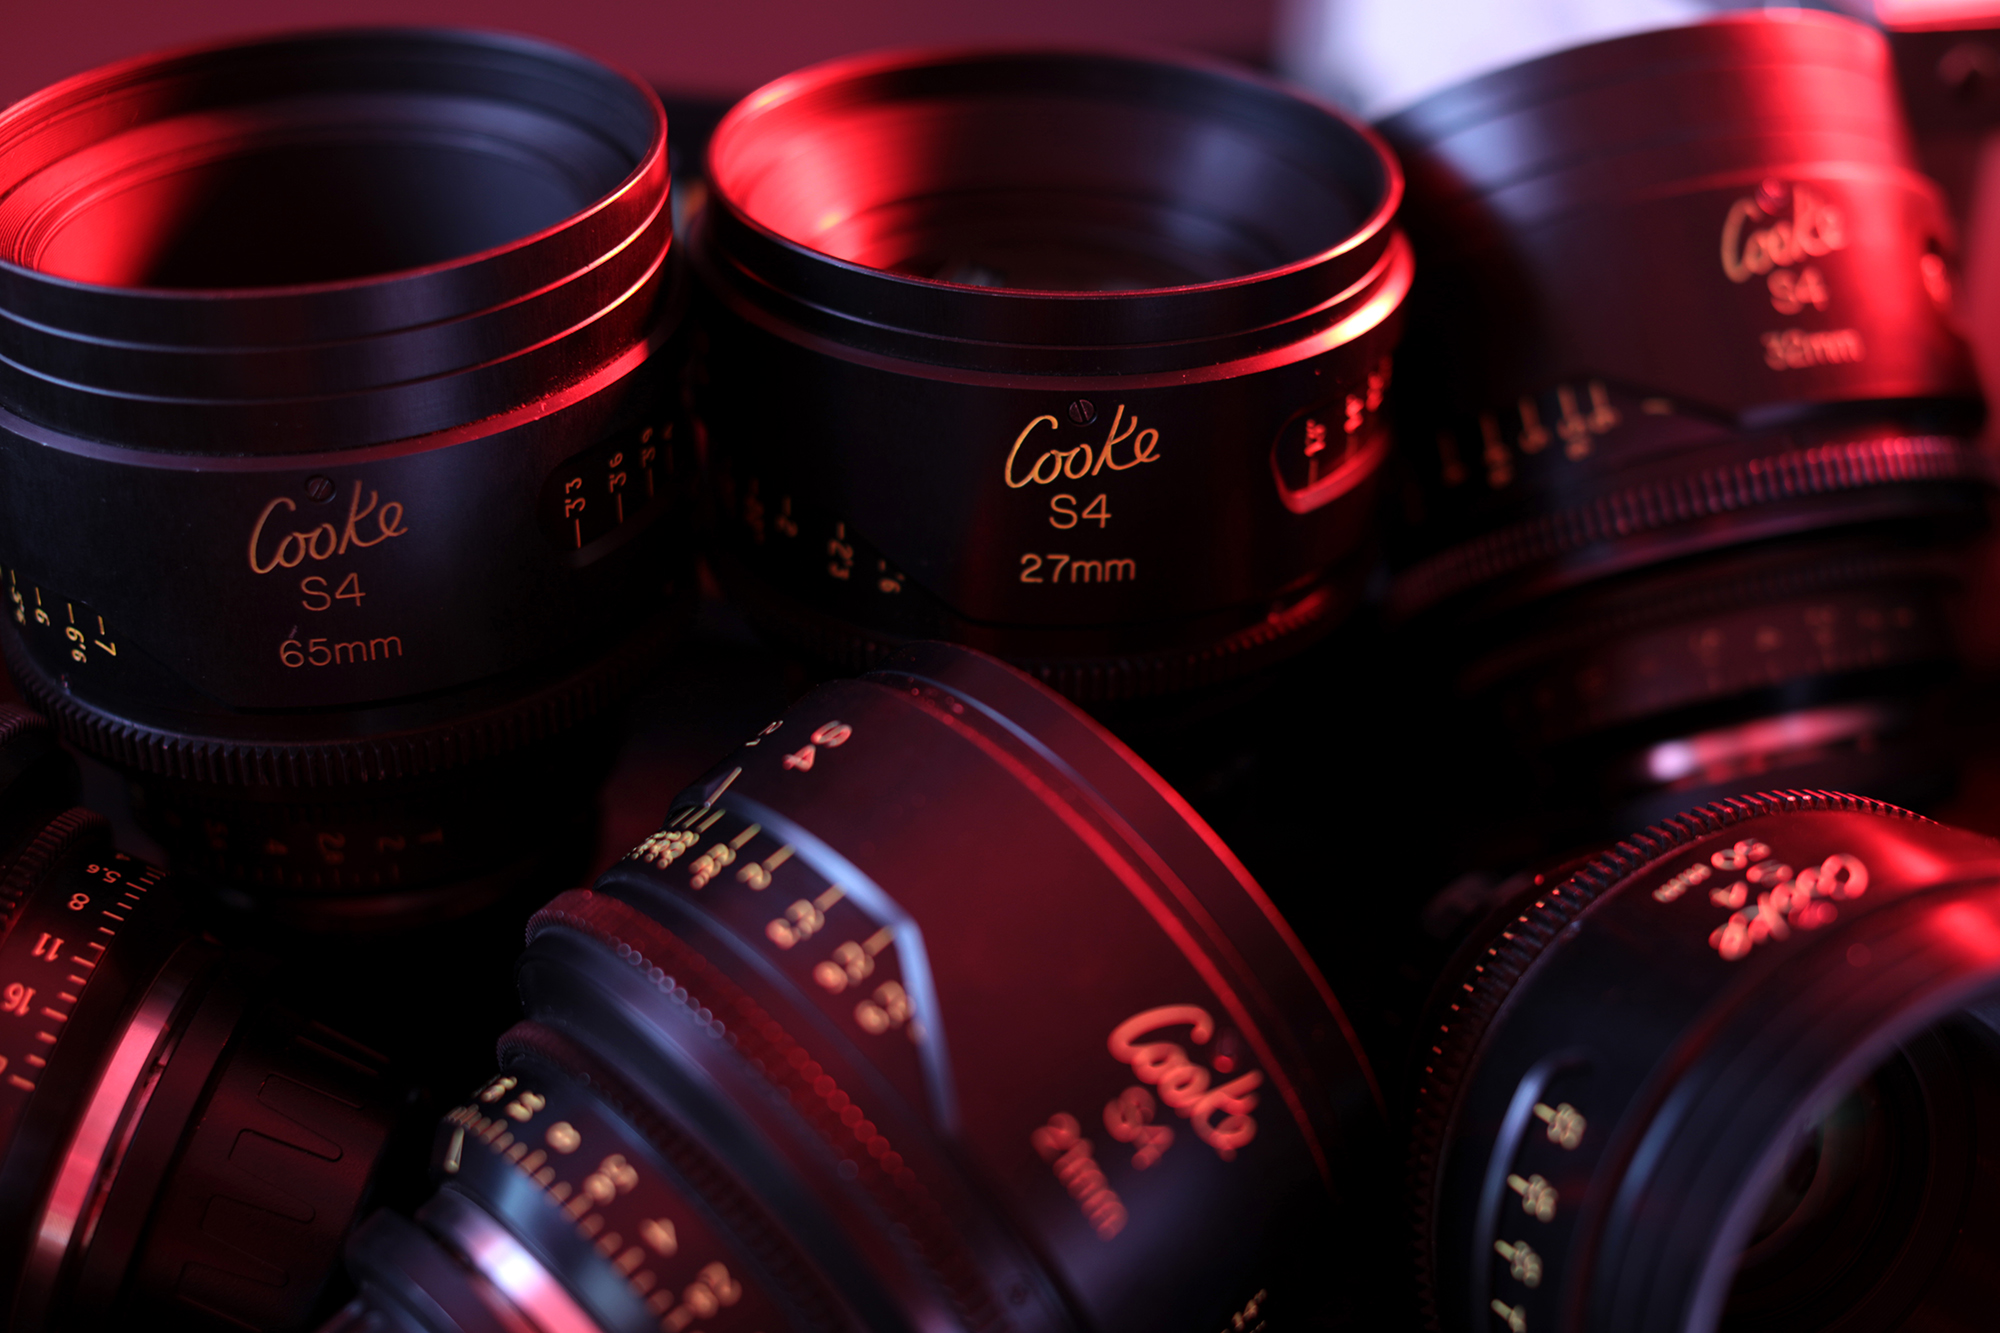 Cooke S4 red